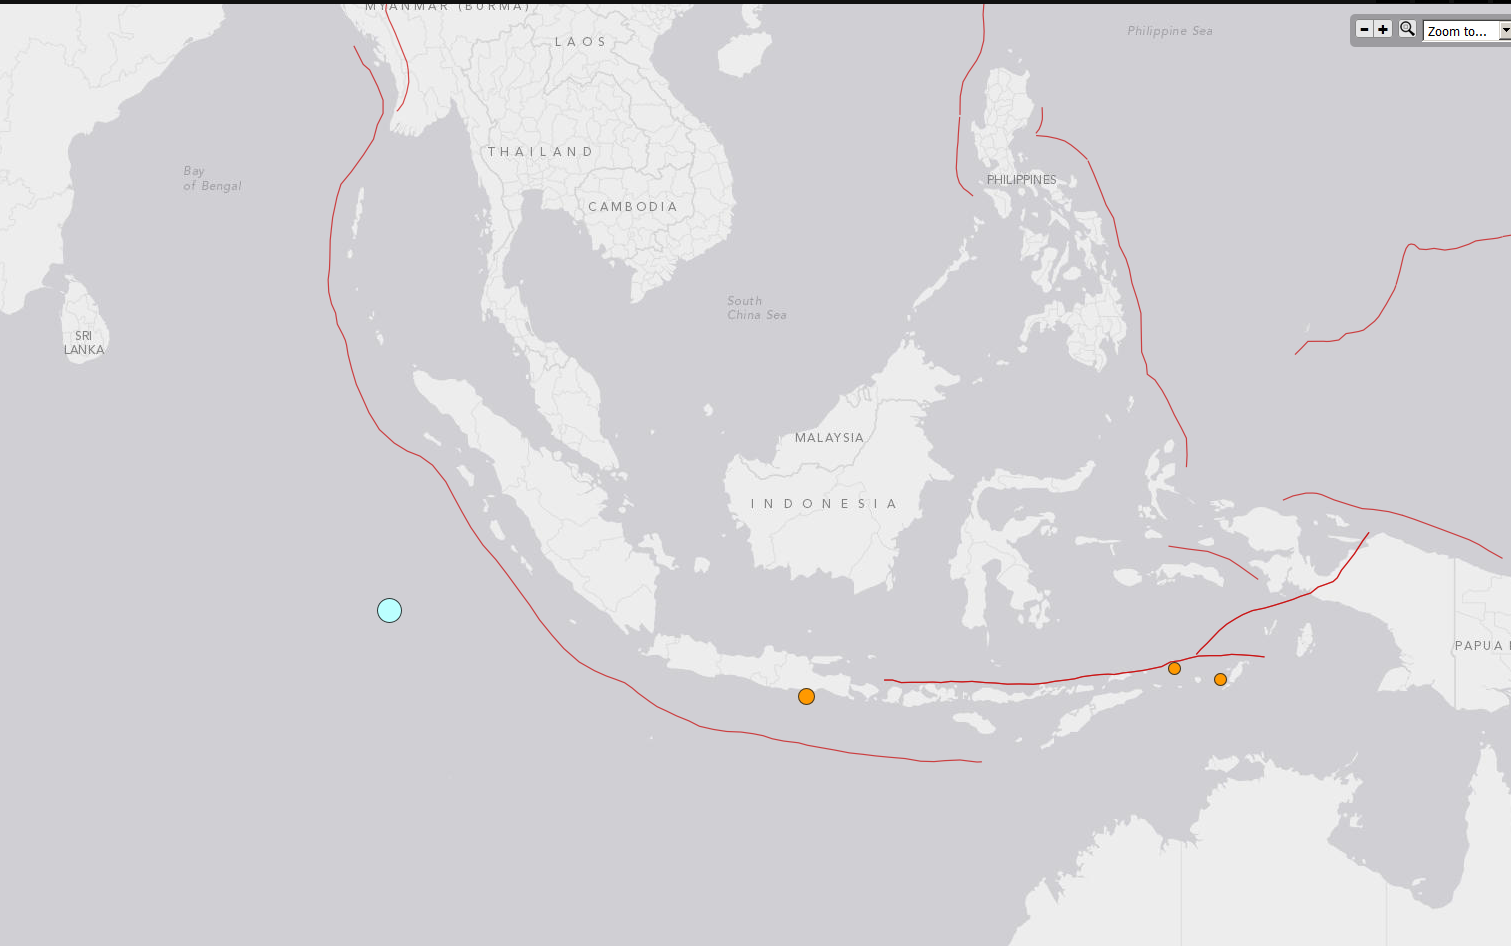 Map shows epicentre of earthquake and nearby tectonic plates